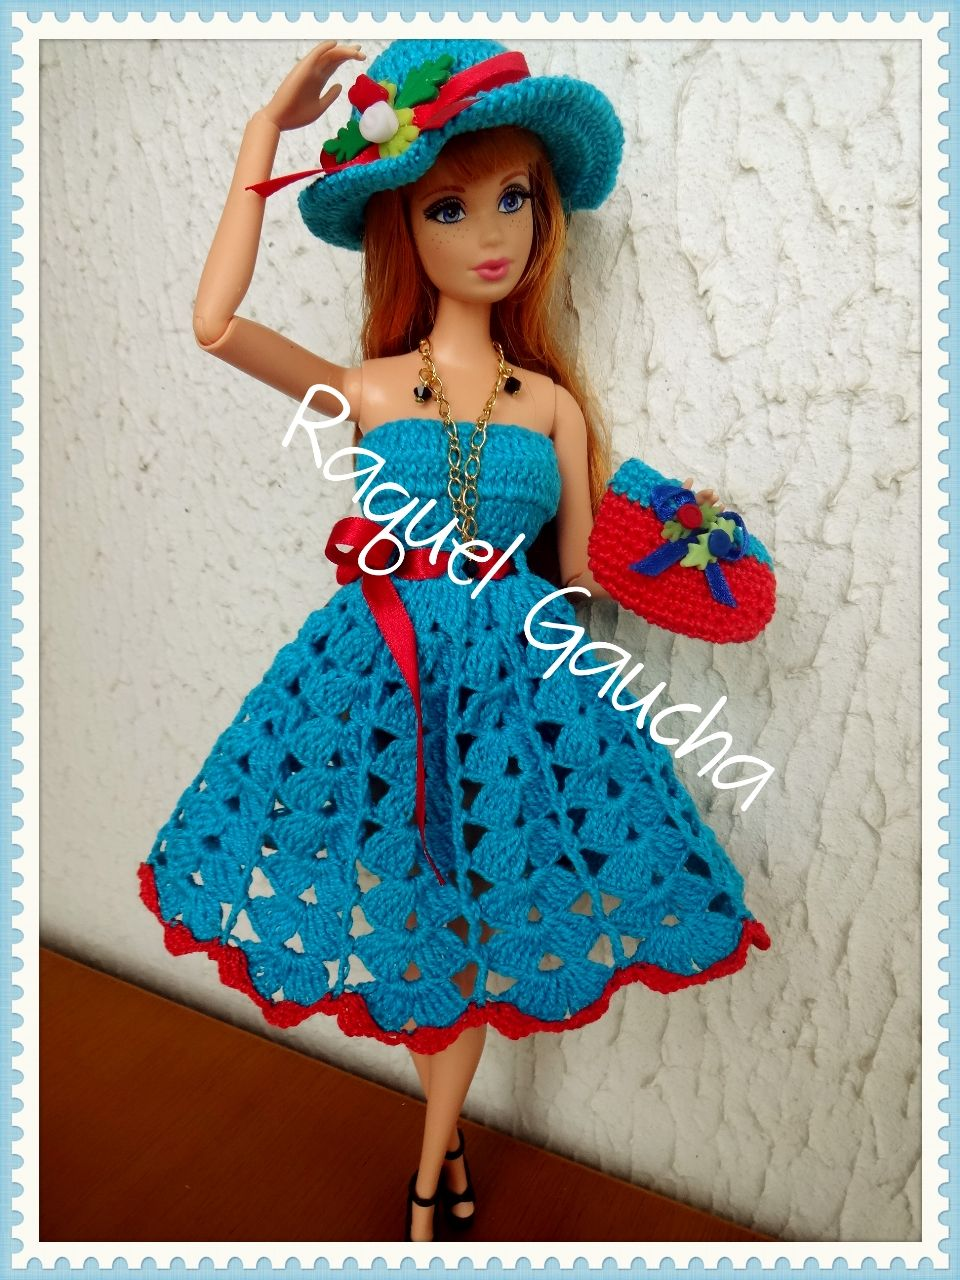 Barbie #Doll #Crochet #Muñeca #Vestido #Dress #Purse #Bolsa #Chapéu ...